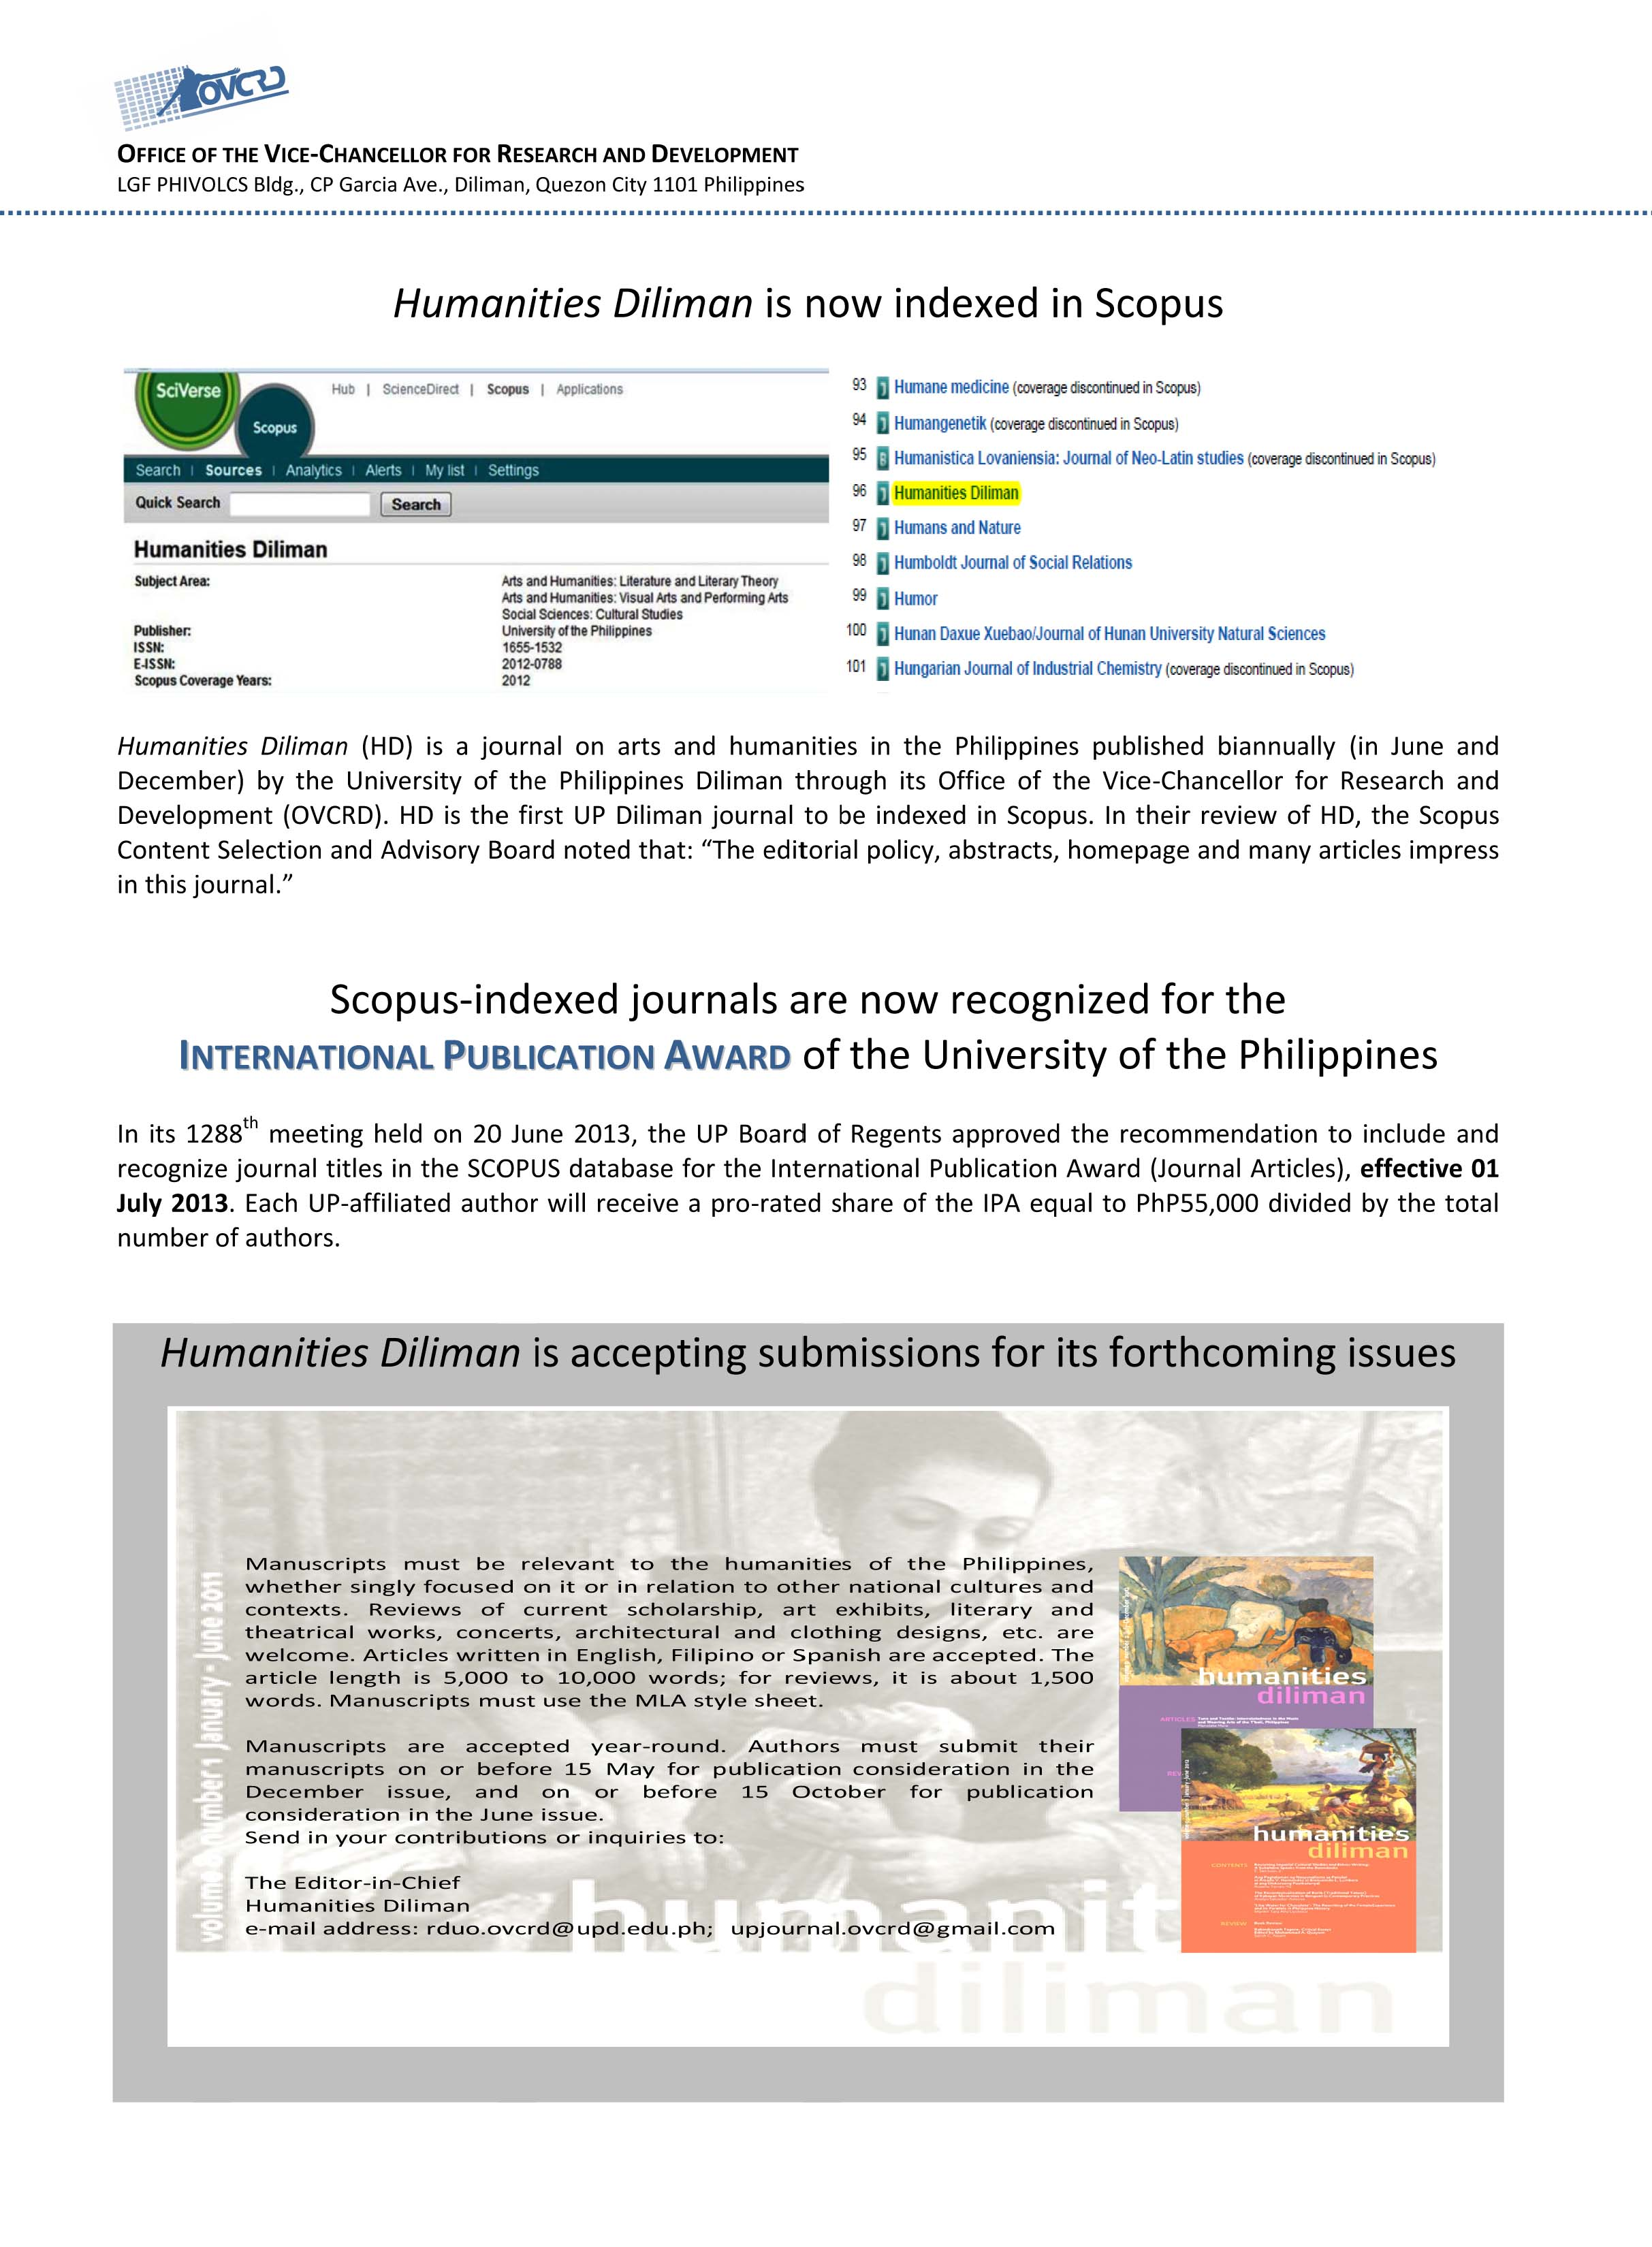 Scopus-indexed journals are now recognized for the International Publication Award of the University of the Philippines